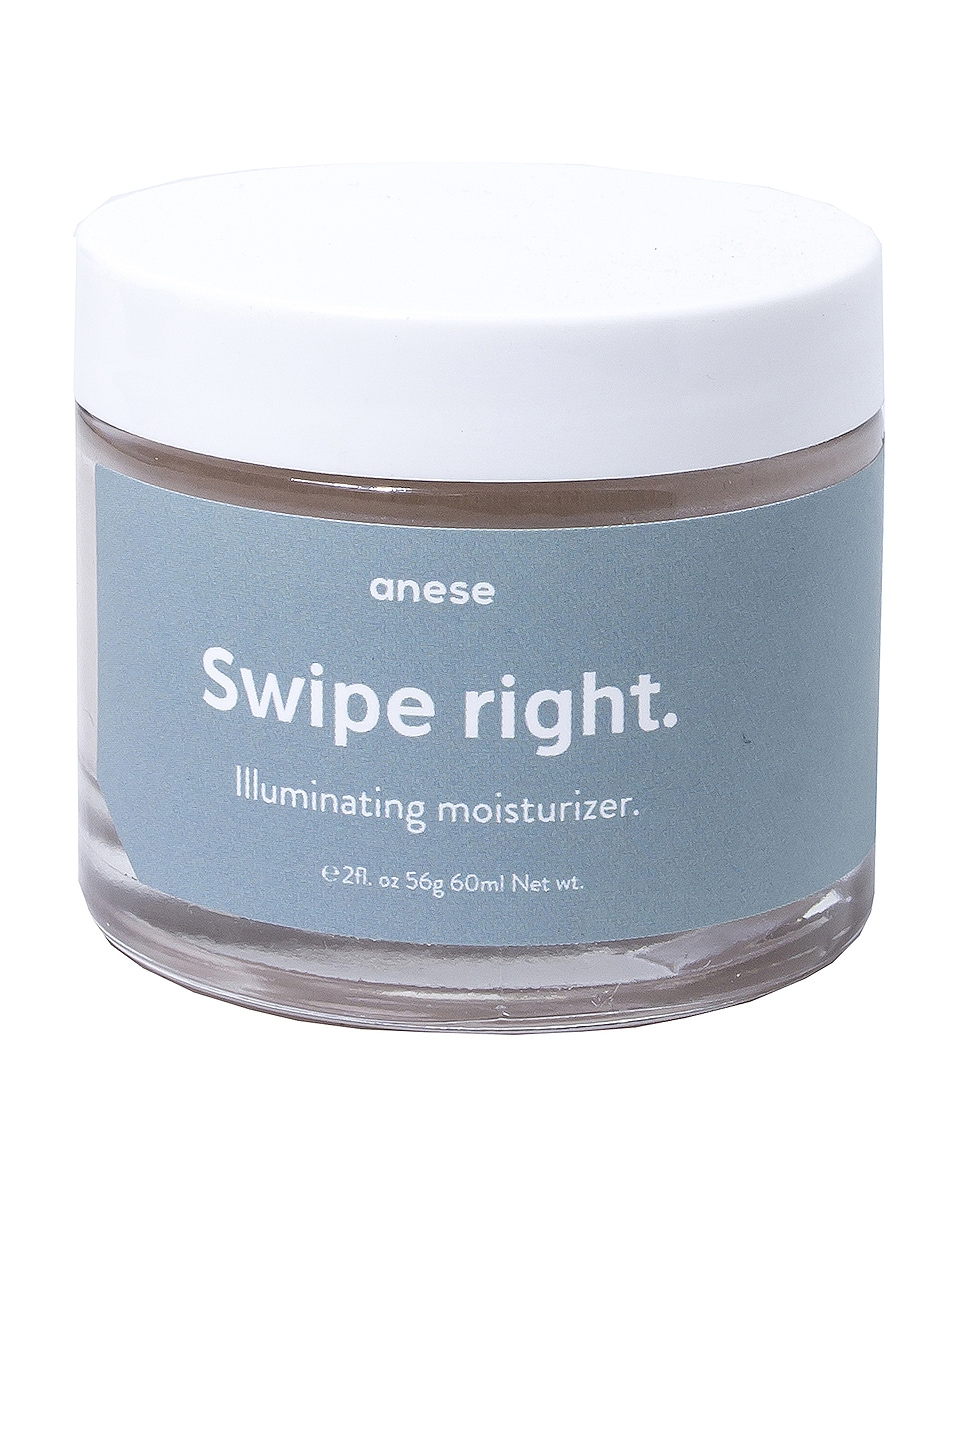 anese Swipe Right Illuminating Moisturizer in All